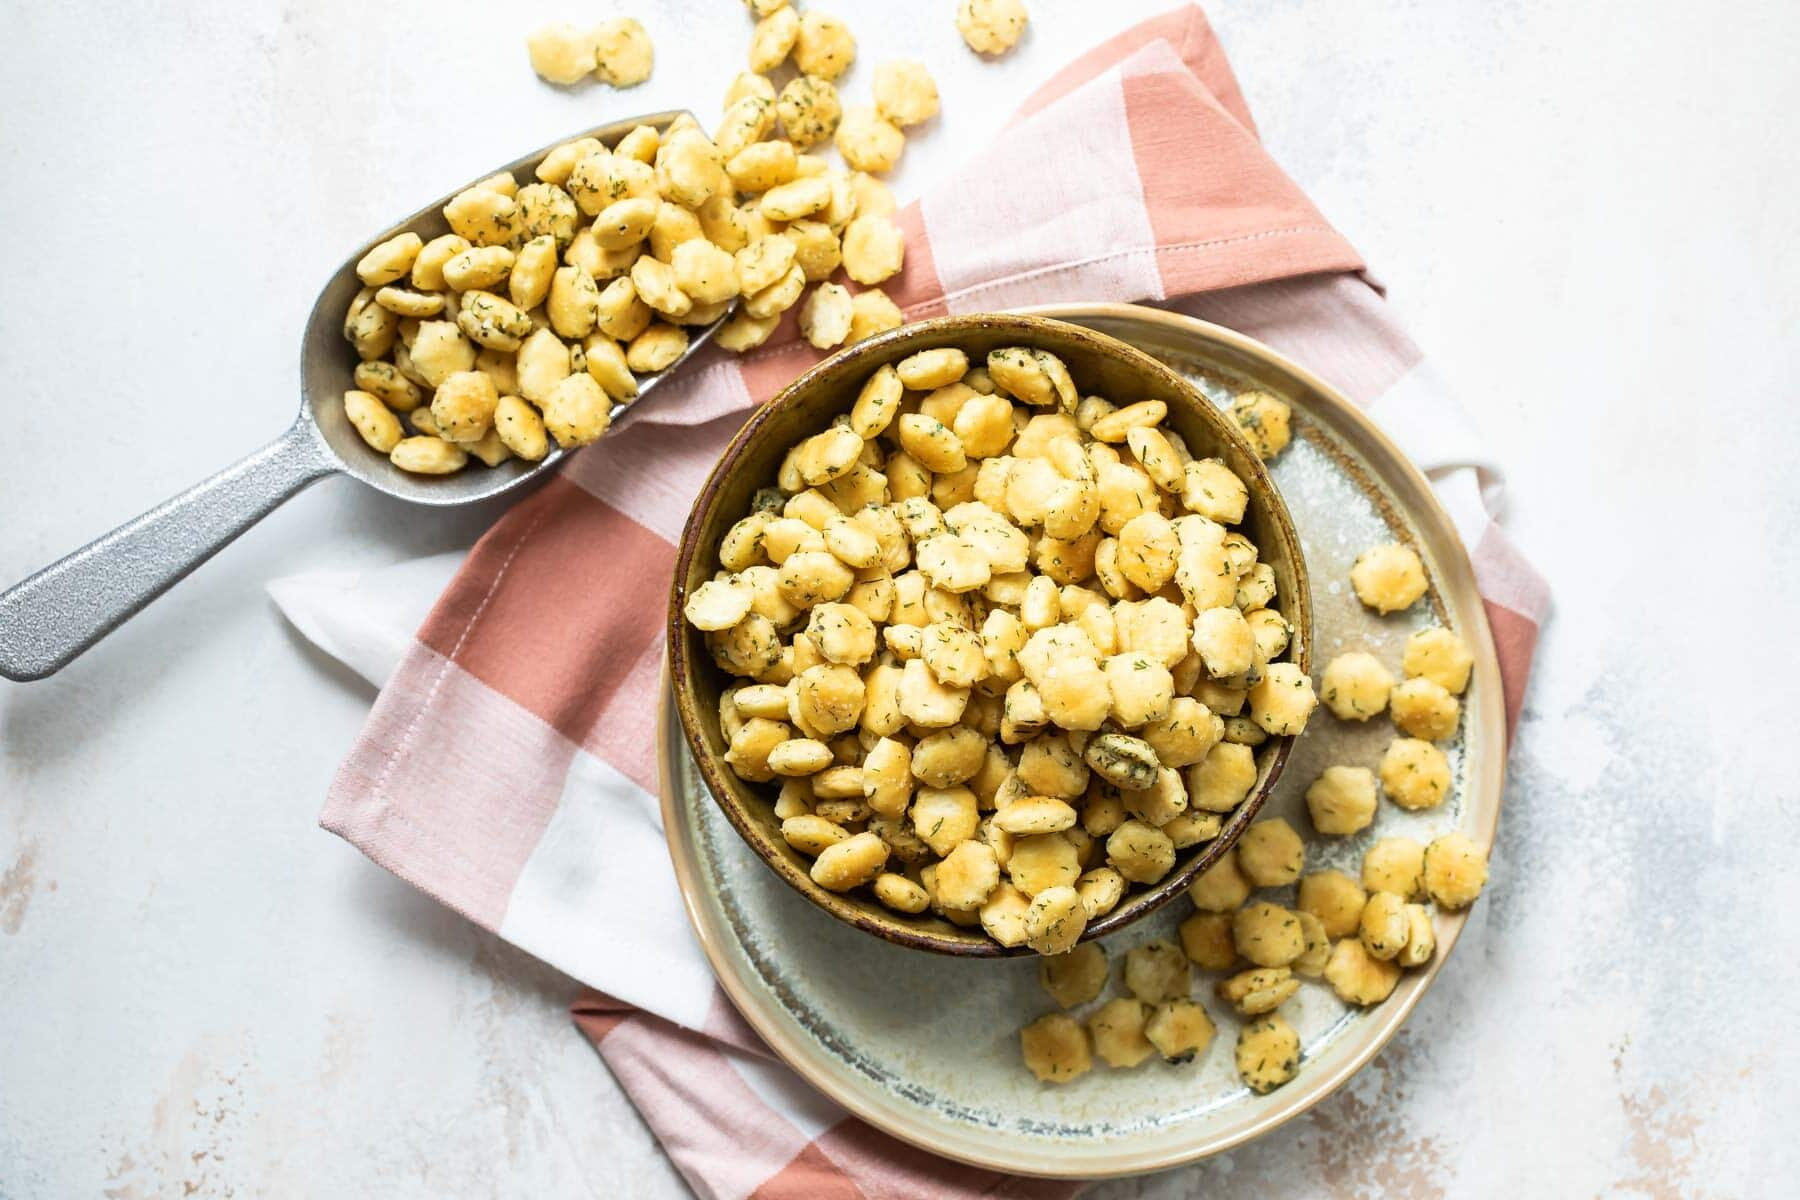 Ranch oyster crackers in a brown bowl.